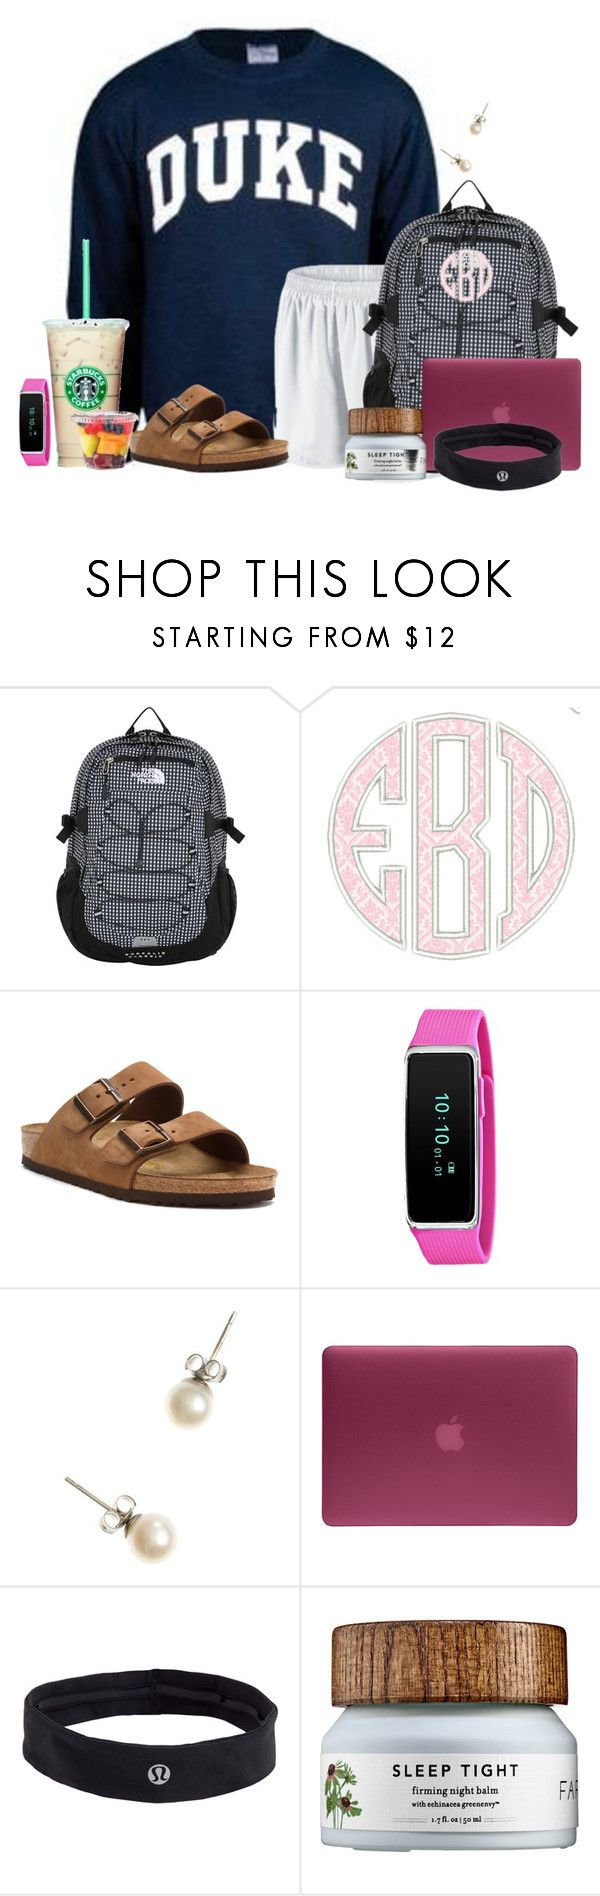 """Everything you need to have a good finals week;)"" by flroasburn ❤ liked on Polyvore featuring NIKE, The North Face, Birkenstock, J.Crew, Incase and lululemon"